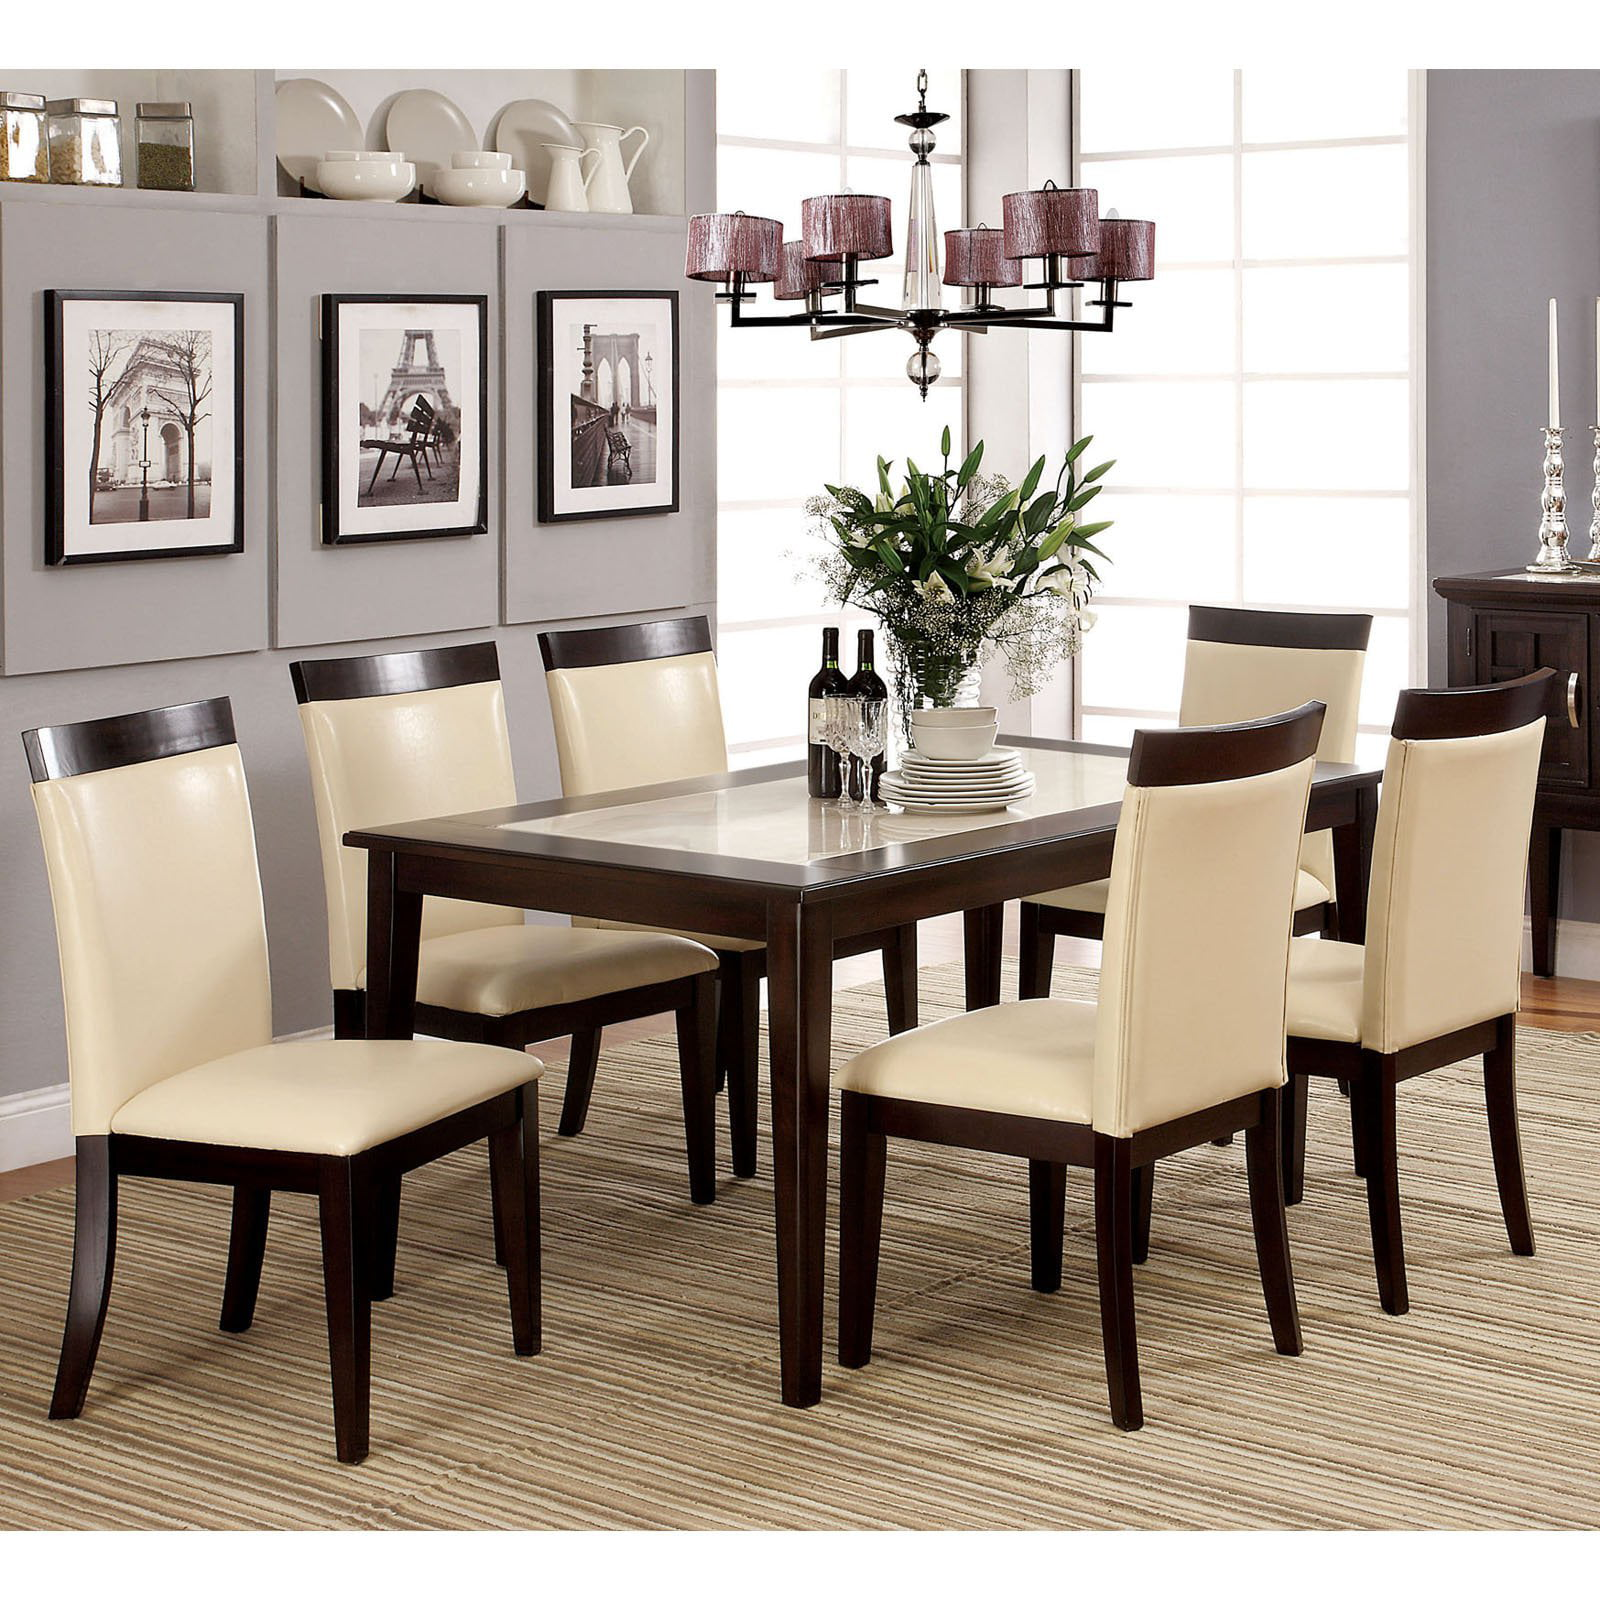 Dorel Living Shiloh 5 Piece Rustic Dining Set